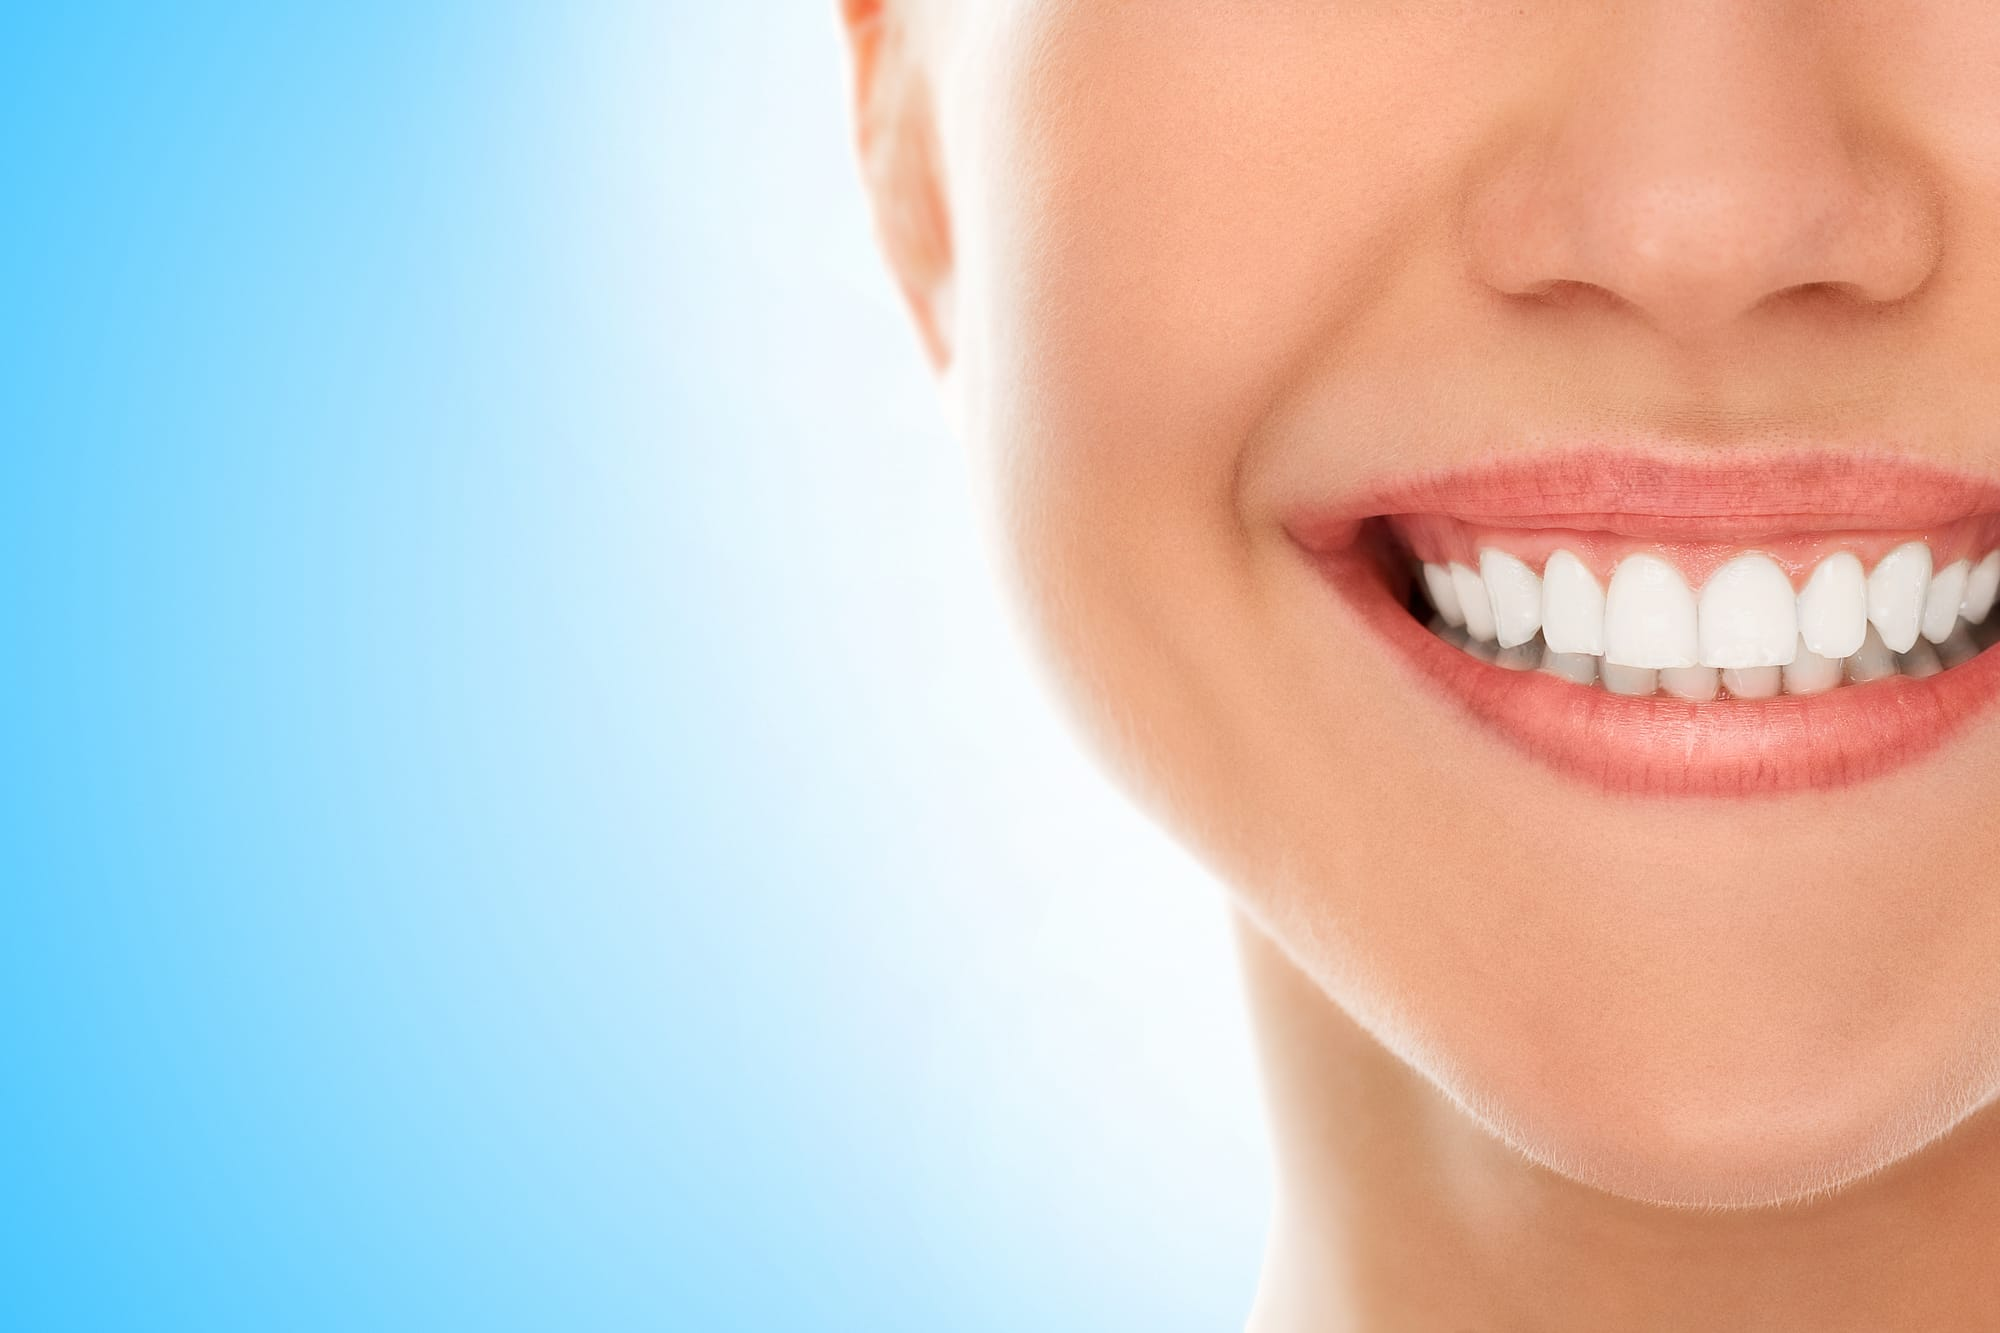 Who is the best Dentist for Teeth Whitening in Miami Gardens